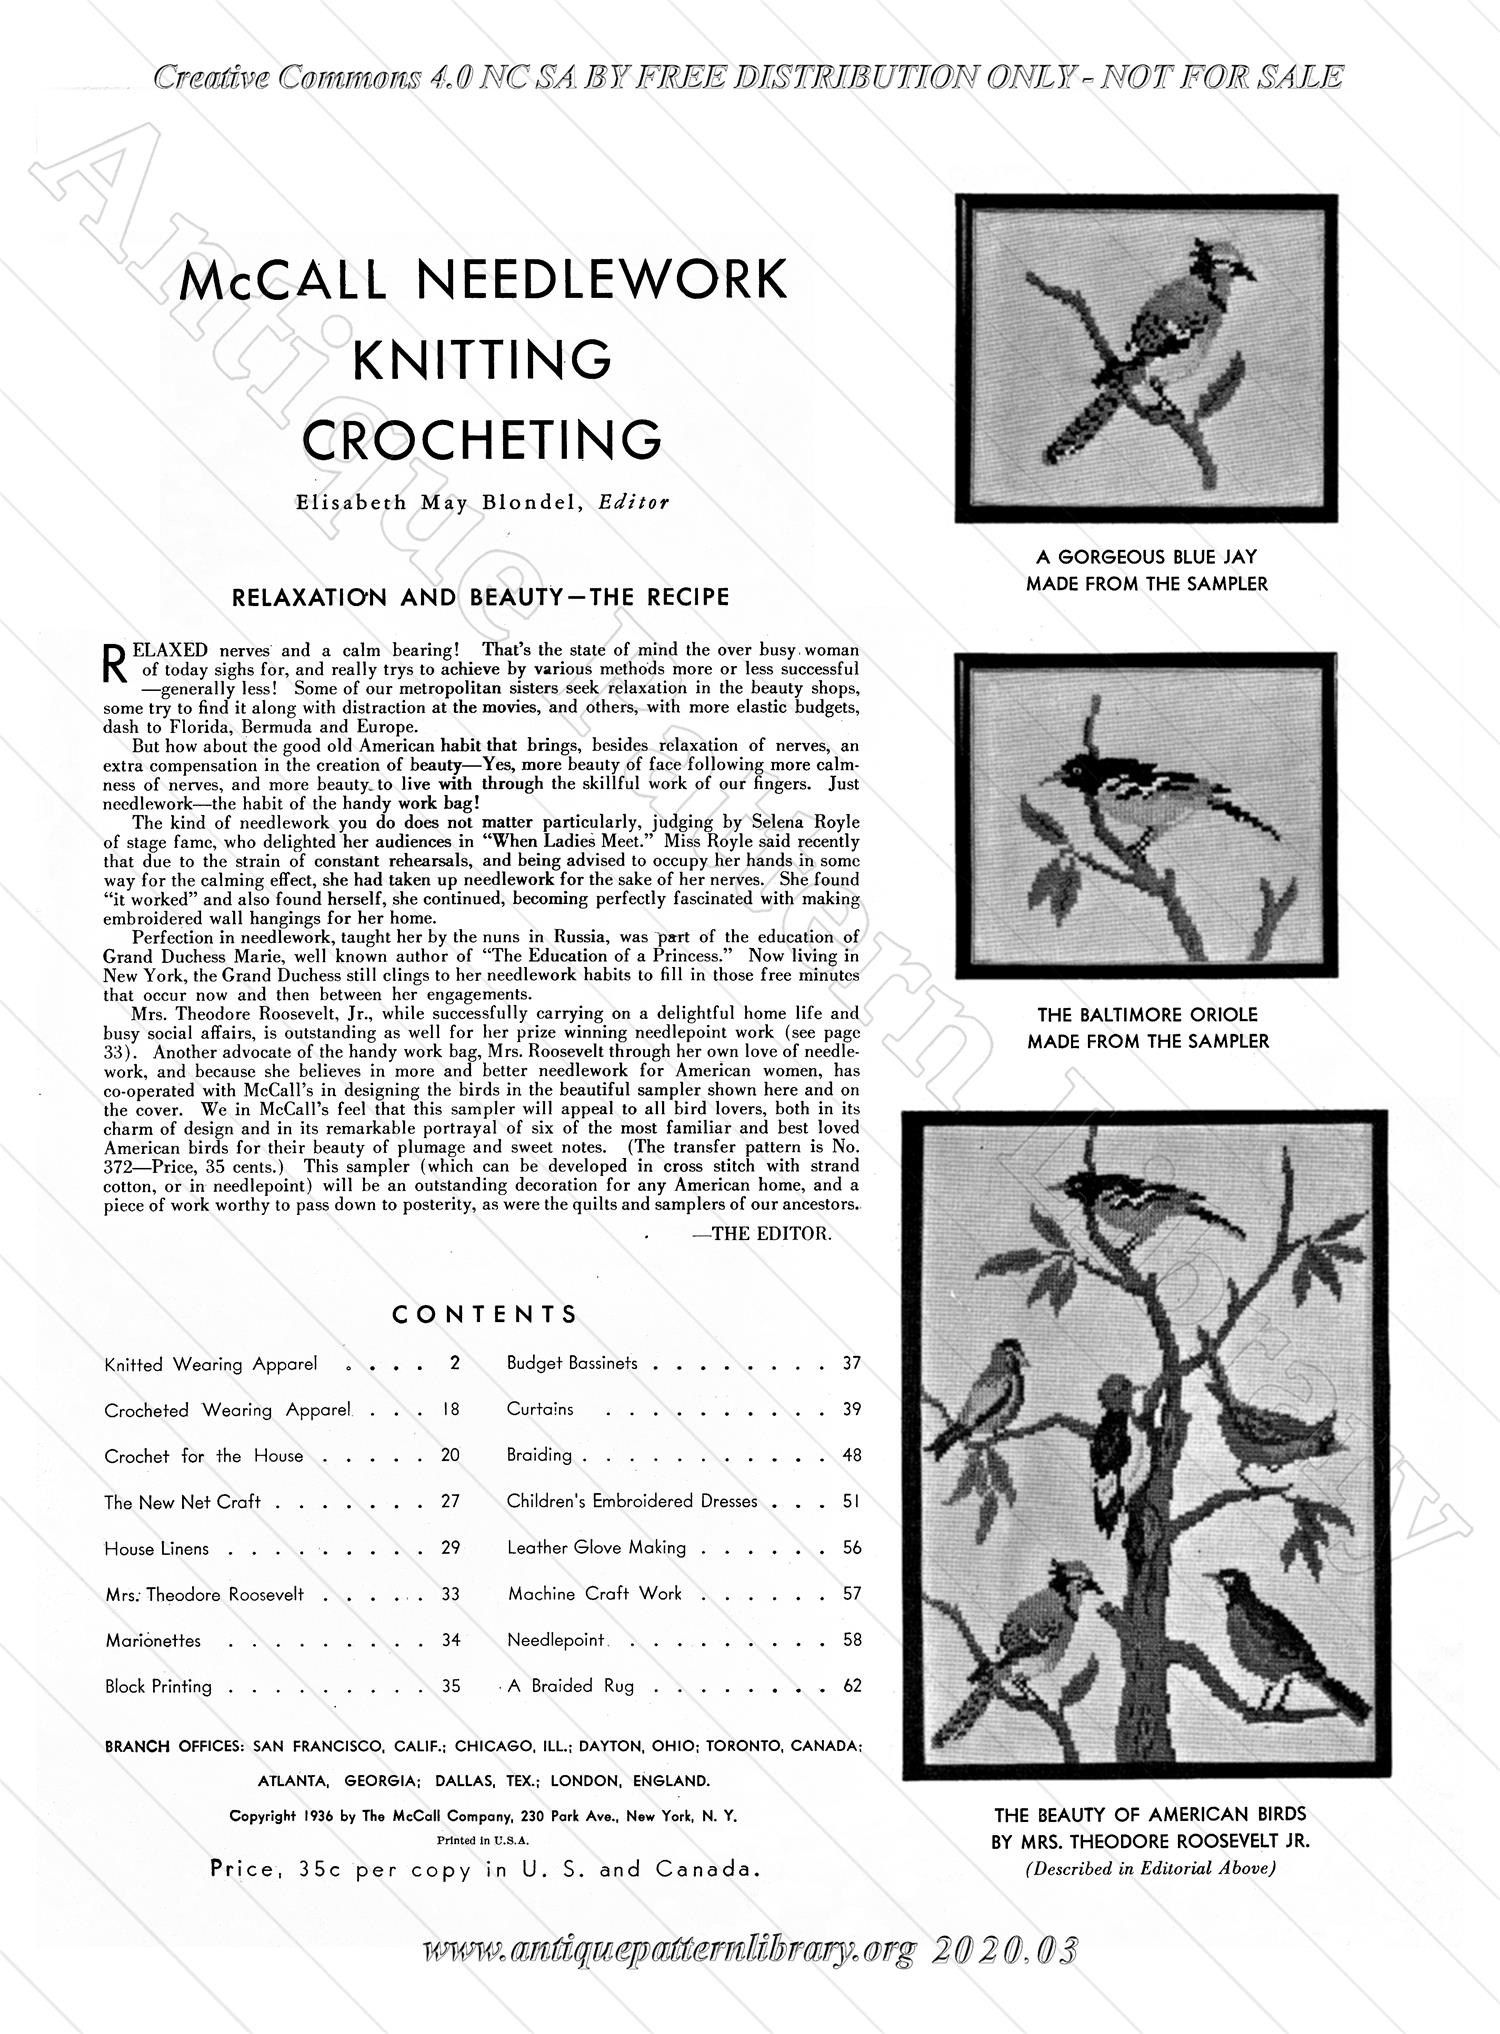 K-AK002 McCall Needlework Knitting Crocheting